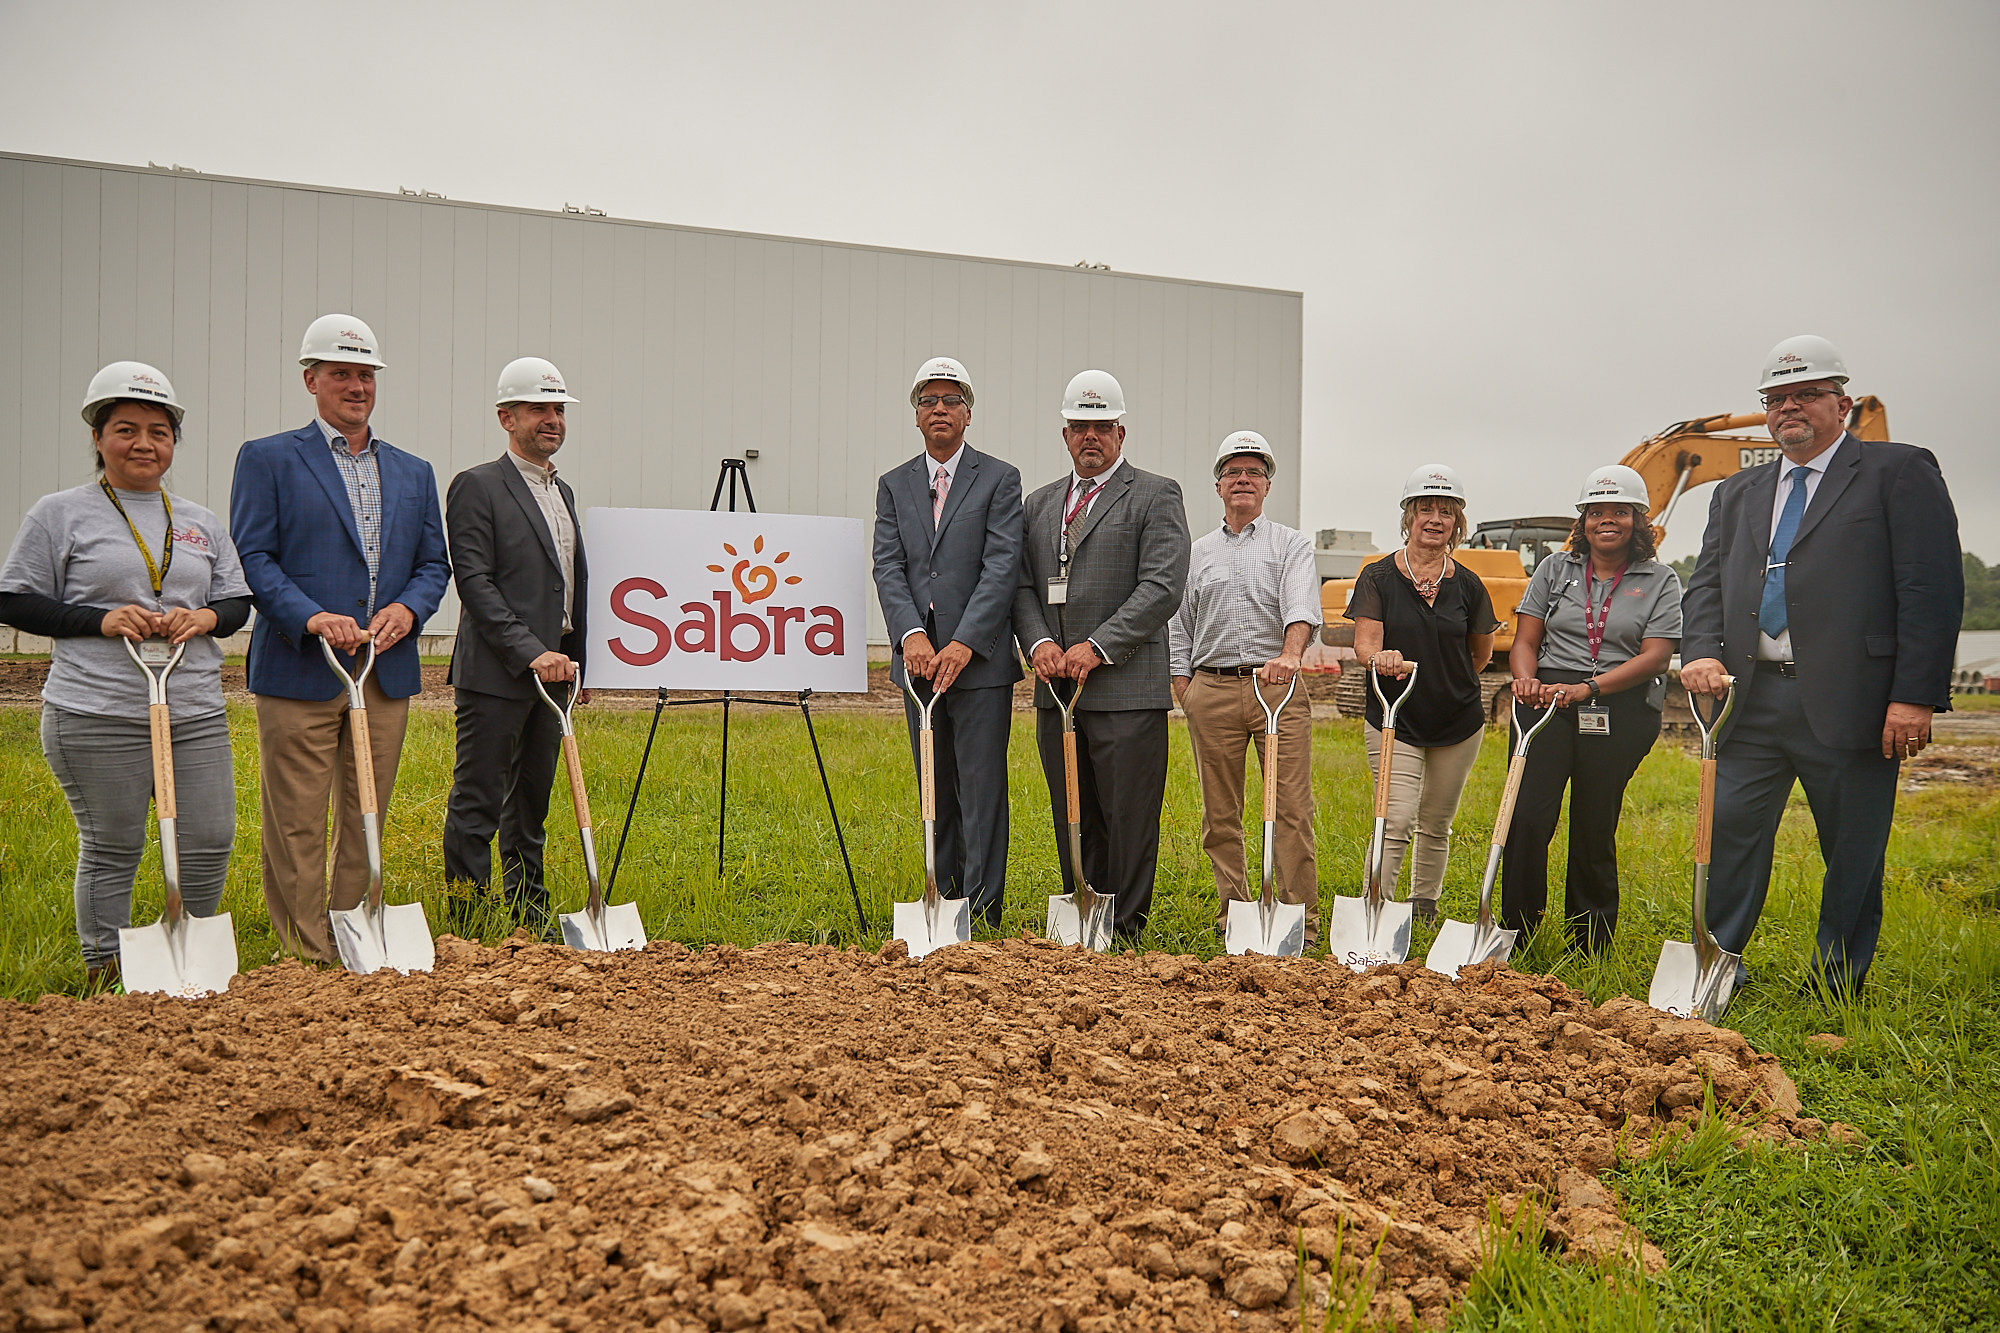 Sabra Dipping Company – Break Ground